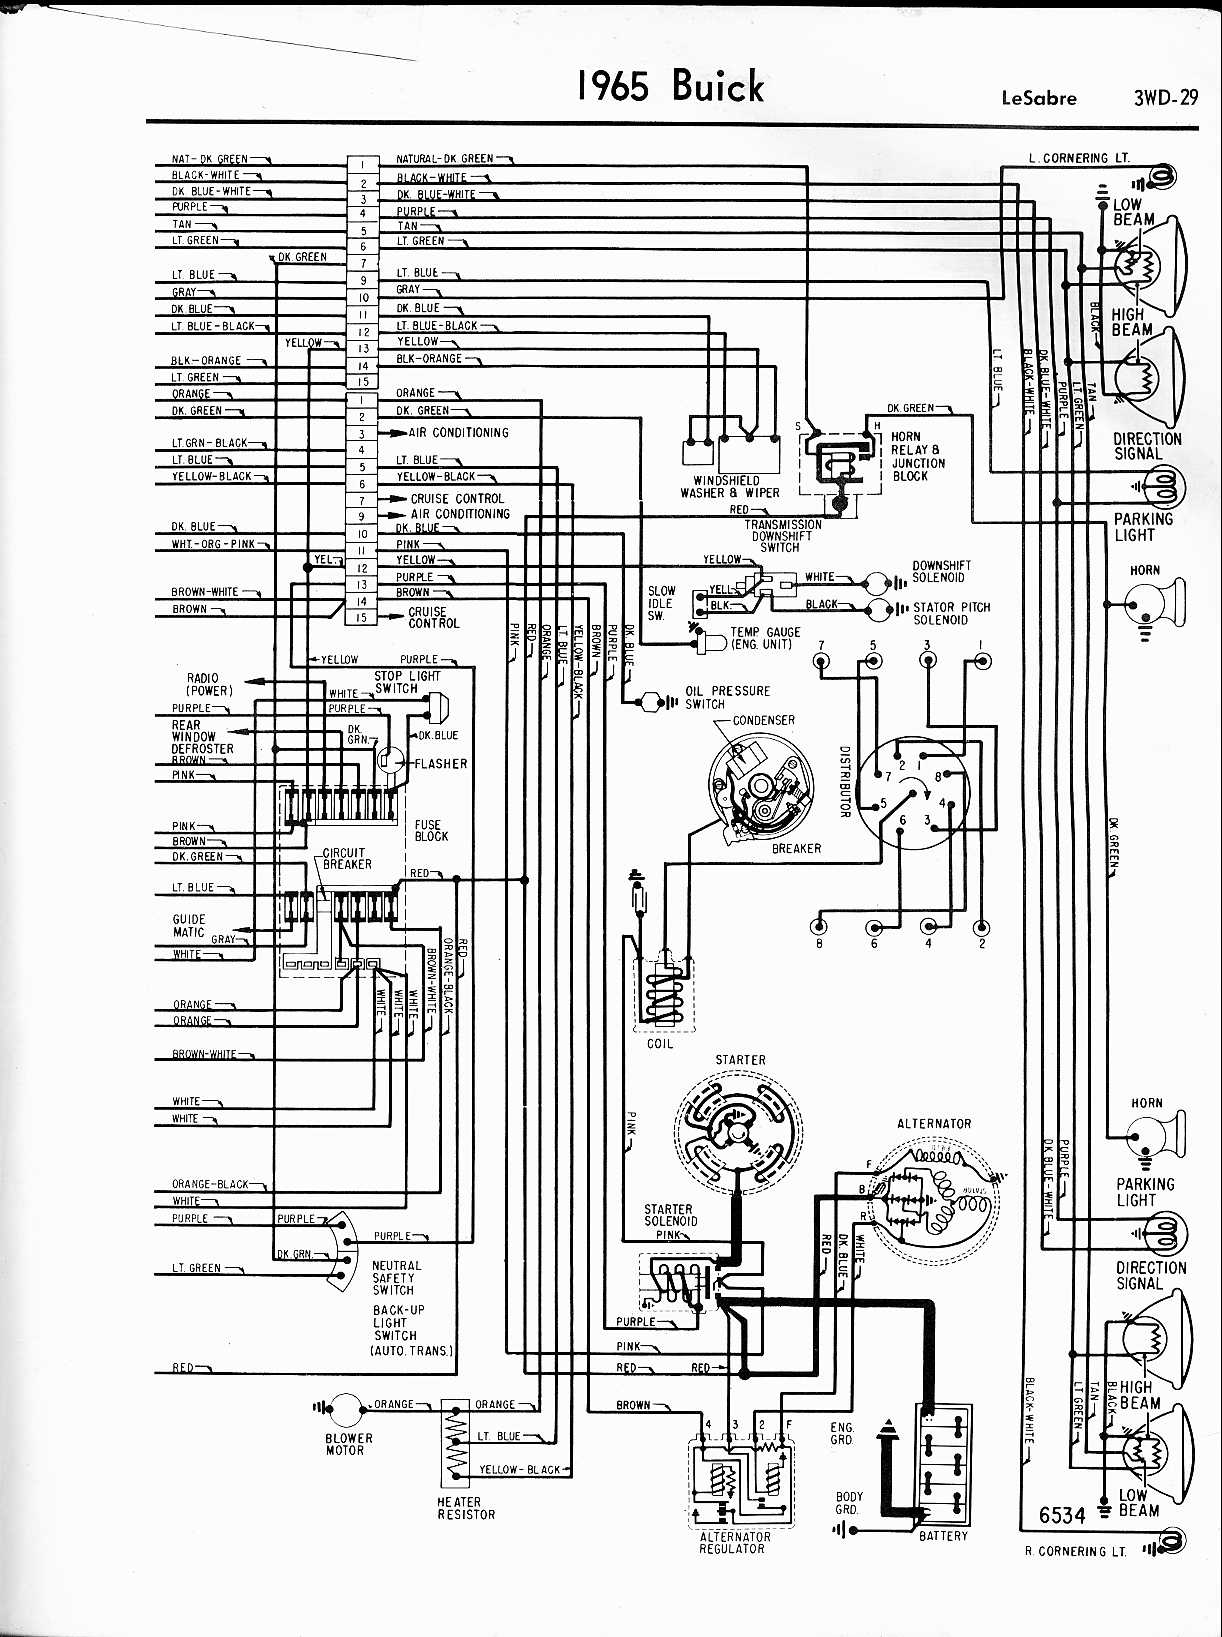 Buick Wiring Diagrams: 1957-1965 on buick transmission diagram, buick suspension, buick century wiring-diagram, buick century electrical diagrams, buick fuel pump diagram, buick 3.8 diagrams, buick century window wire diagrams, 1990 buick lesabre radio diagram, 1995 buick century power window diagram,